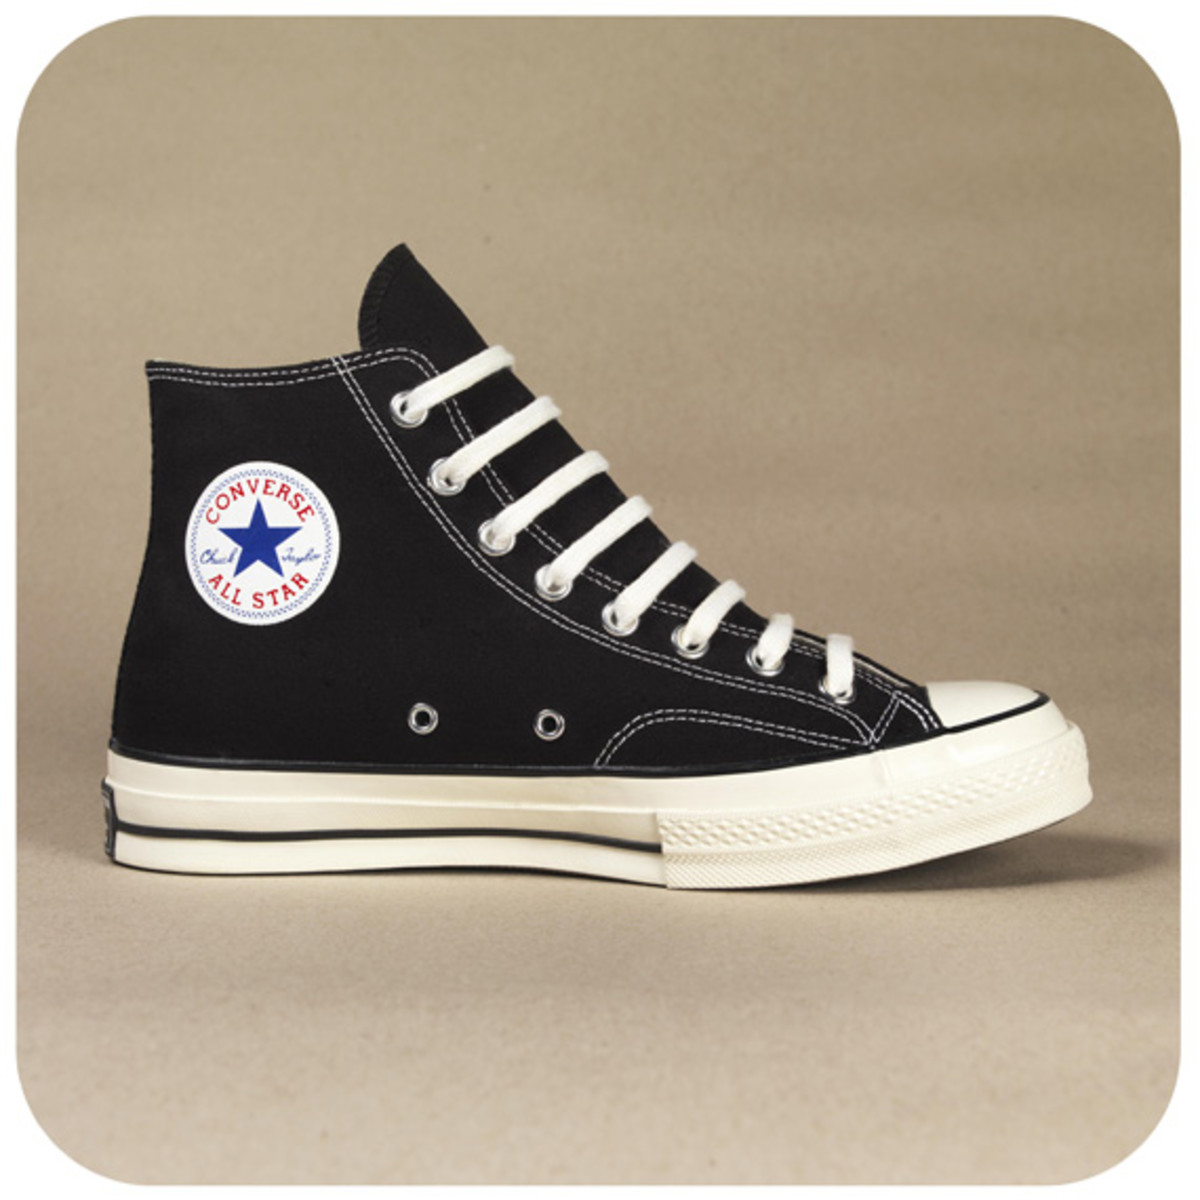 converse-first-string-1970s-chuck-taylor-all-star-03